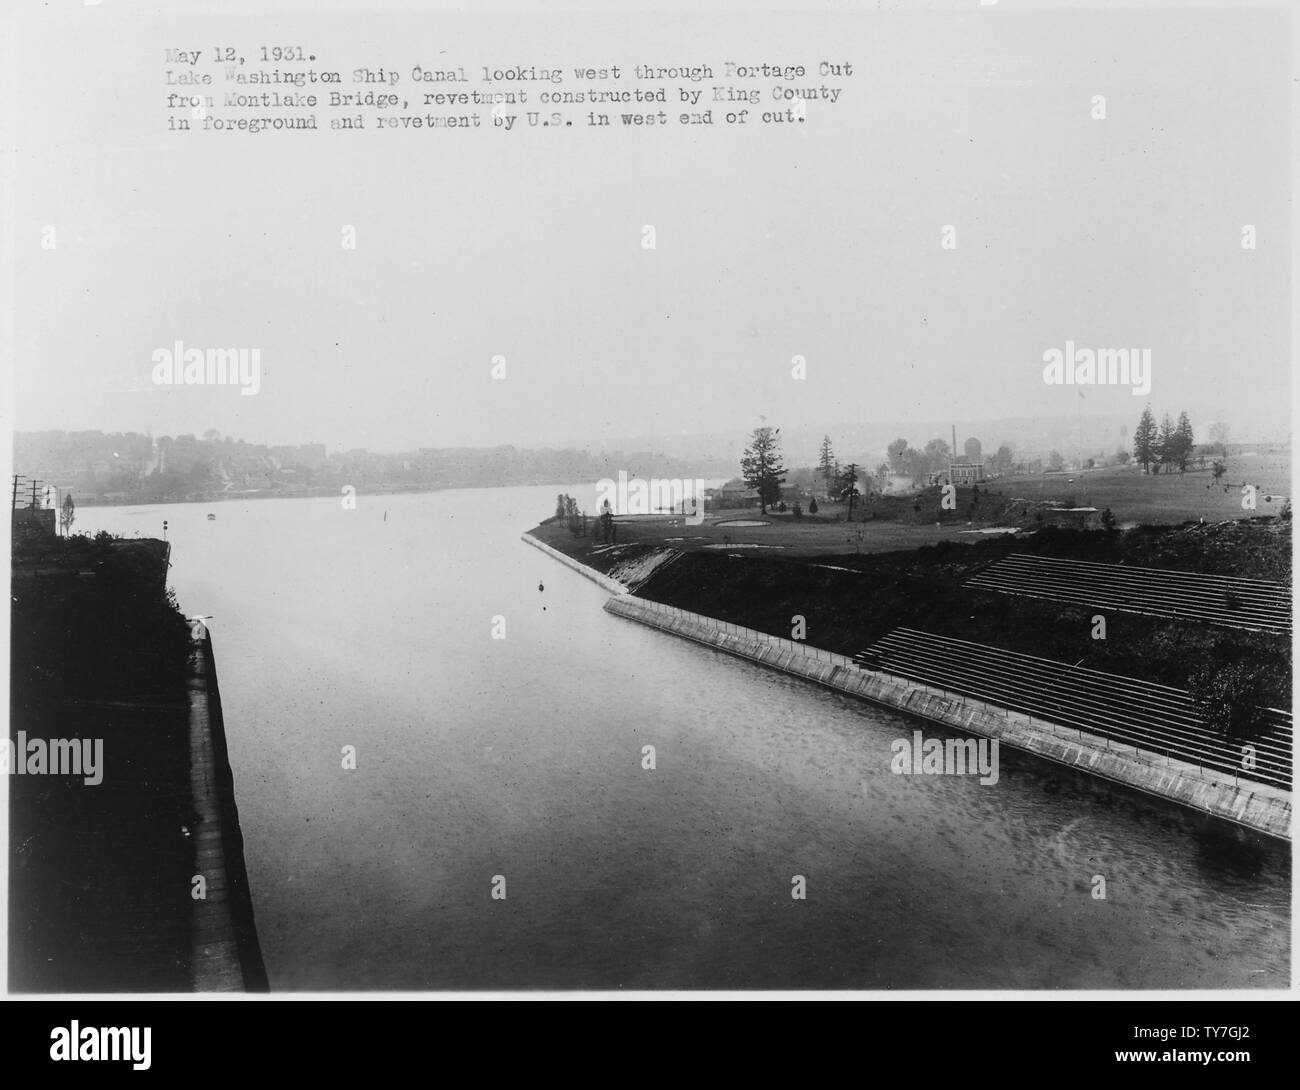 Lake Washington Ship Canal, U.S. Government Locks, Seattle, Washington. Looking west through Portage Cut from Montlake Bridge, showing revetment constructed by King County in foreground and revetment by U.S. in west end of cut.; Scope and content:  The US Army Corps of Engineers extensively photographed many of the Civil Works project and river and harbor improvement that they were involved with. The Lake Washington Ship Canal and the Hiram Chittenden Locks were built to allow passage between fresh water Lake Union and salt water Puget Sound. Stock Photo